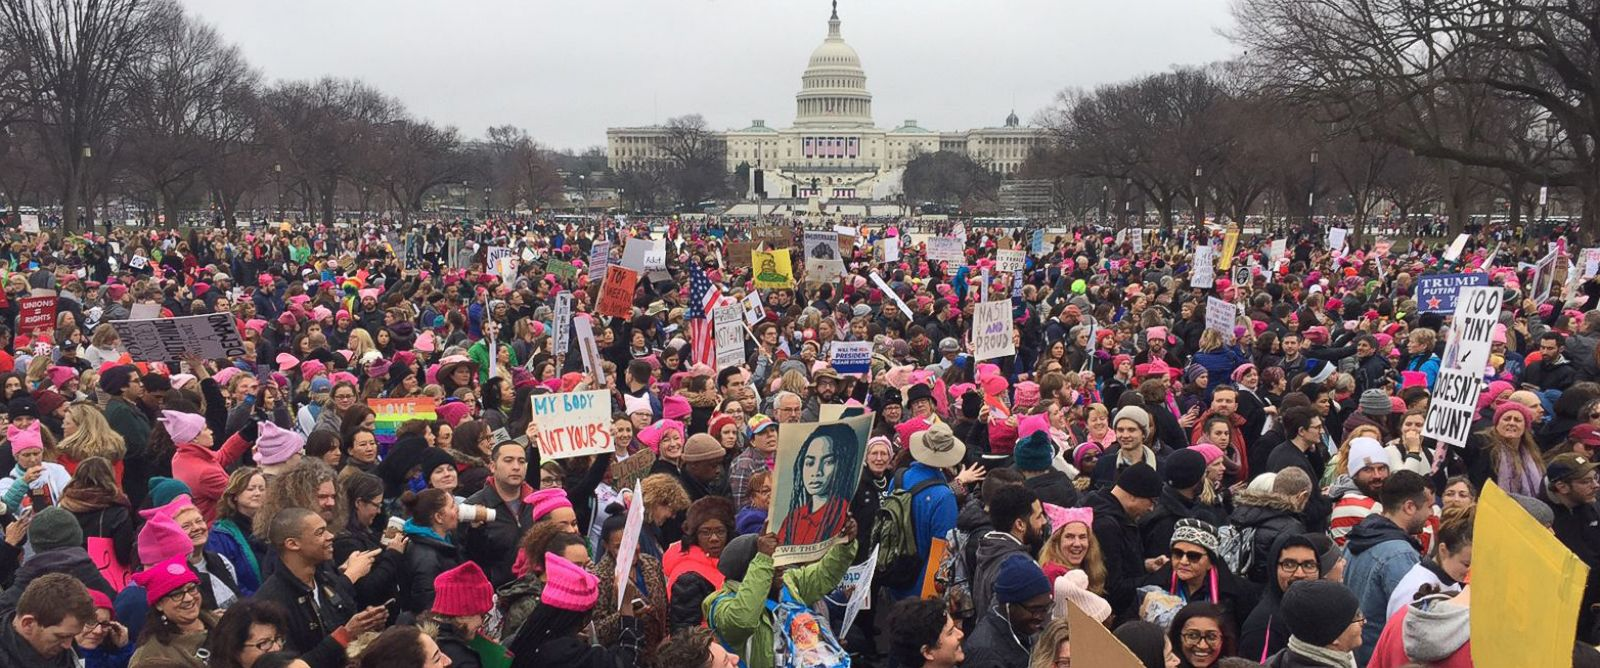 http://a.abcnews.com/images/Politics/GTY-womens-march-washington-4-jt-170121_12x5_1600.jpg